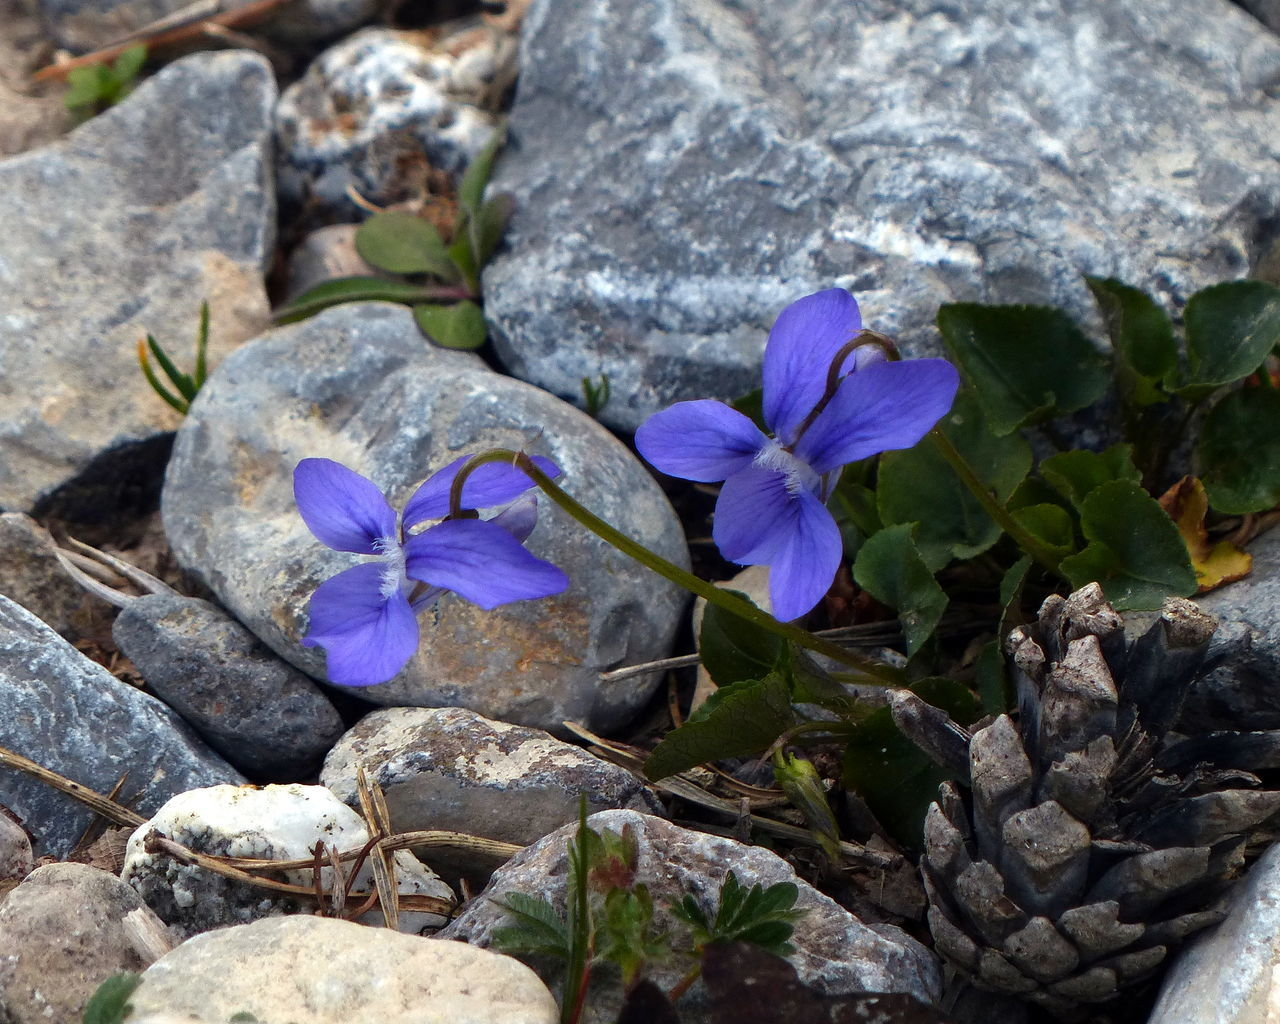 flower, rock - object, nature, beauty in nature, purple, fragility, no people, petal, flower head, day, outdoors, plant, high angle view, growth, blue, close-up, blooming, freshness, animal themes, crocus